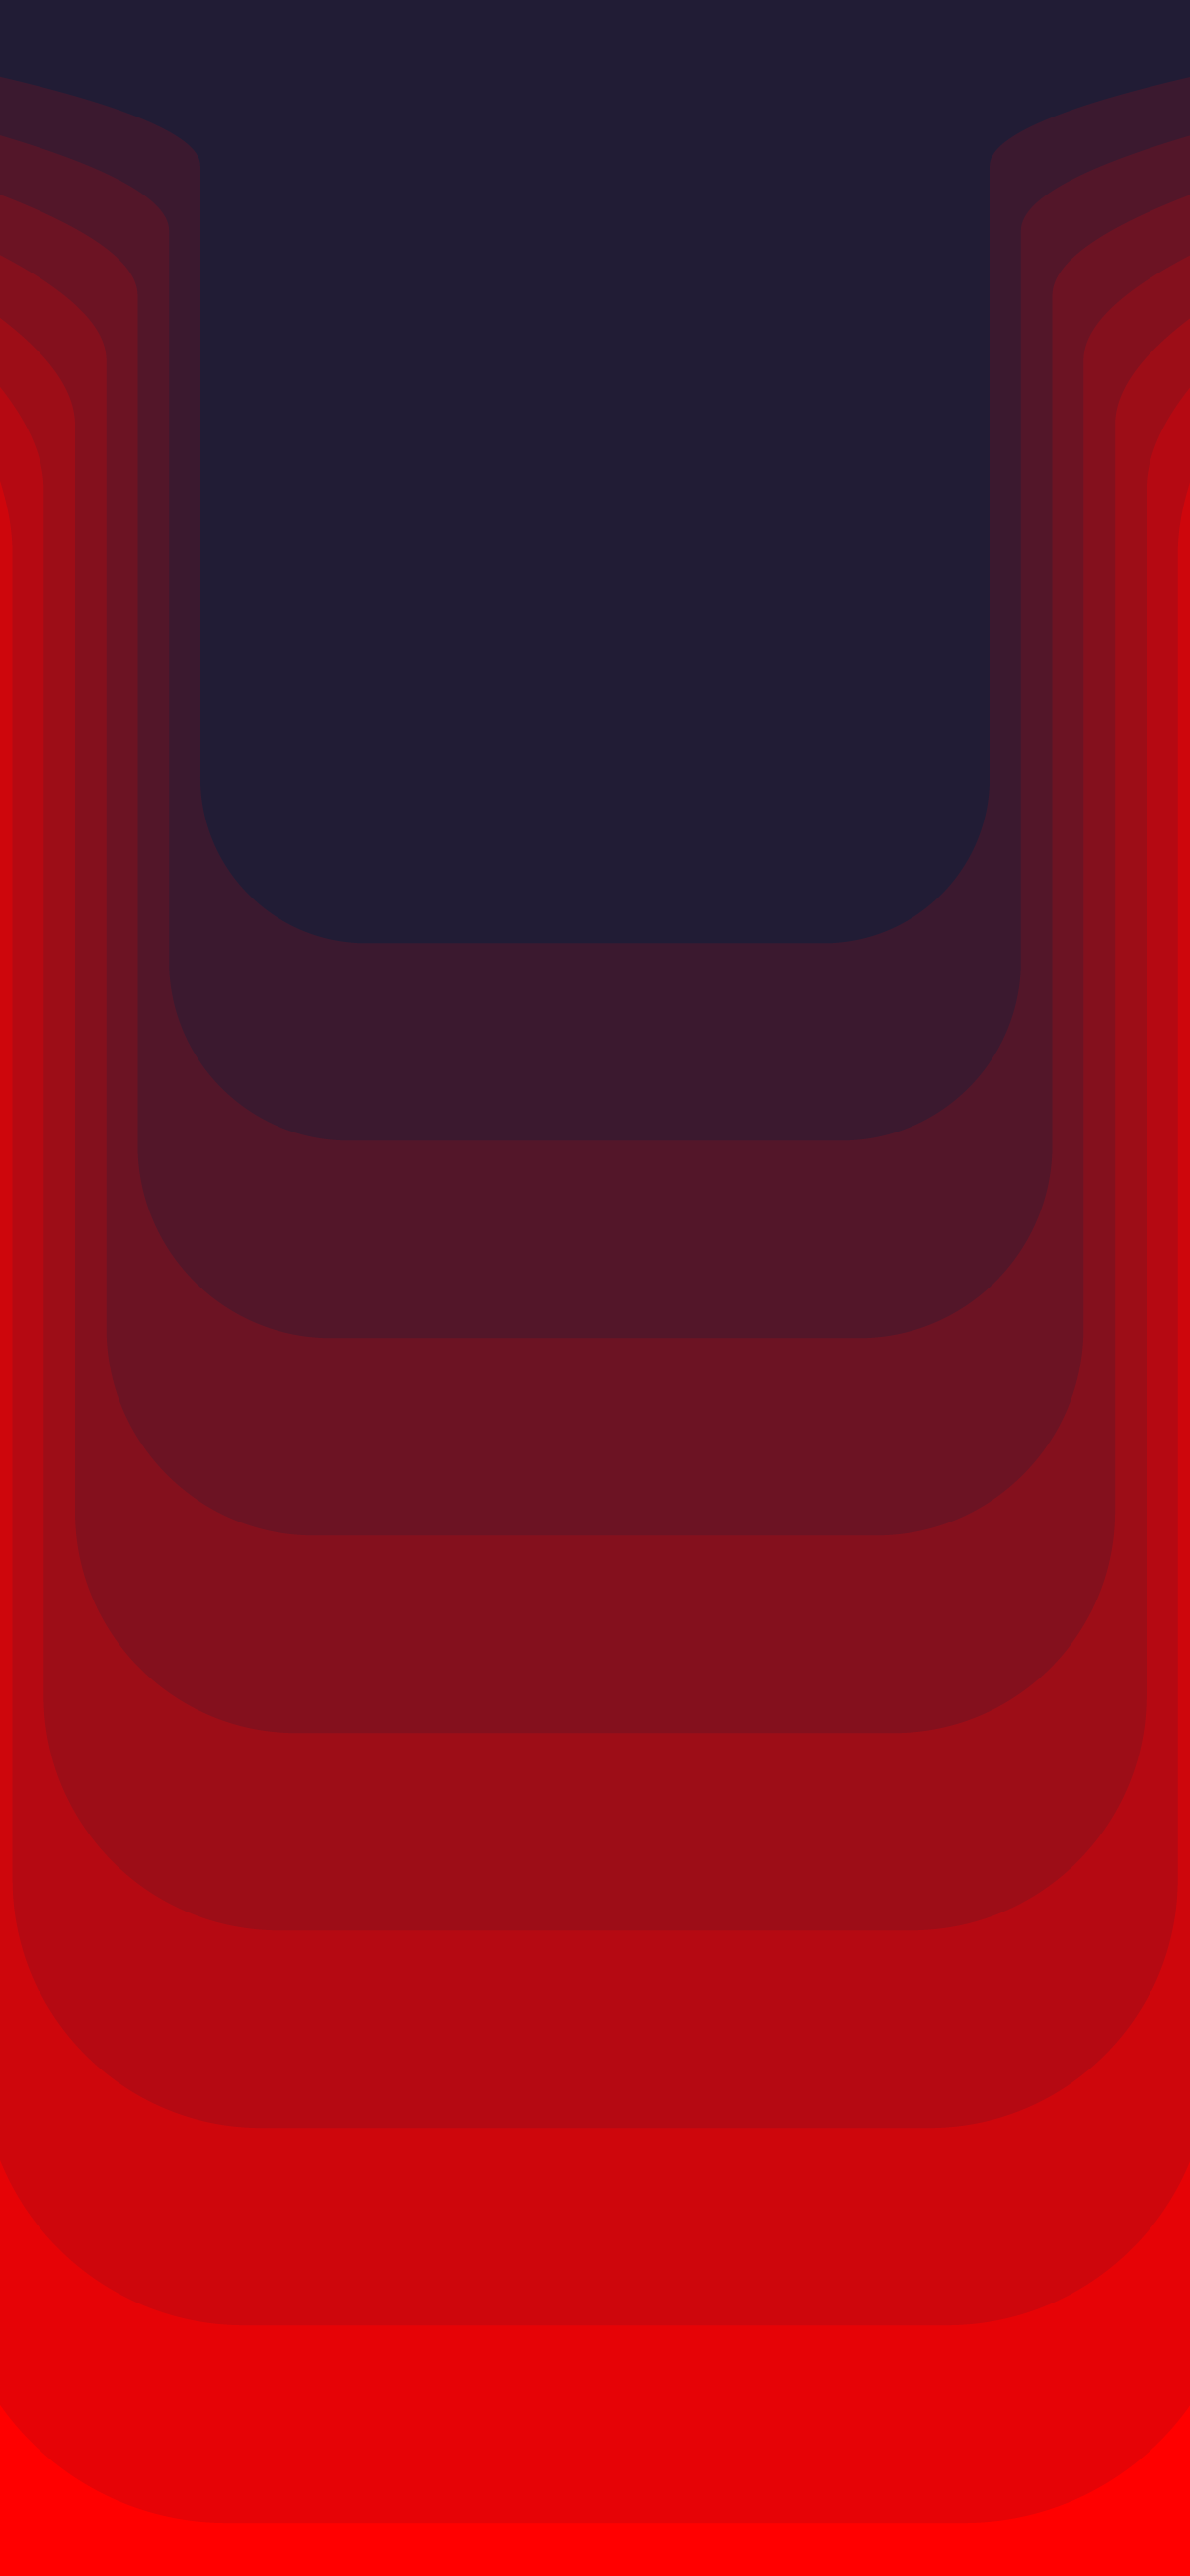 gradient-dark-and-red